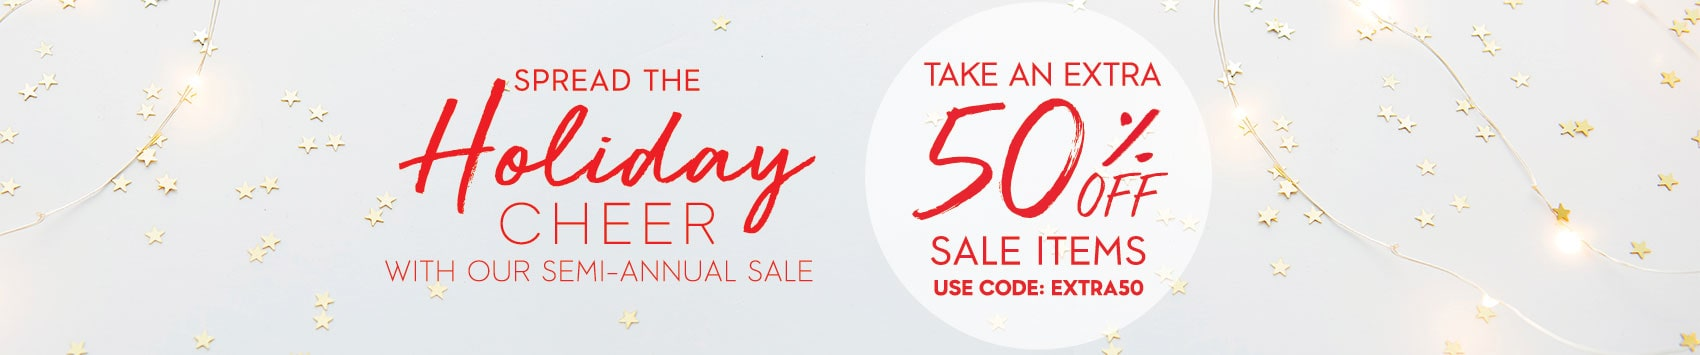 TAKE AN EXTRA *50% OFF SALE ! *USE CODE: EXTRA50